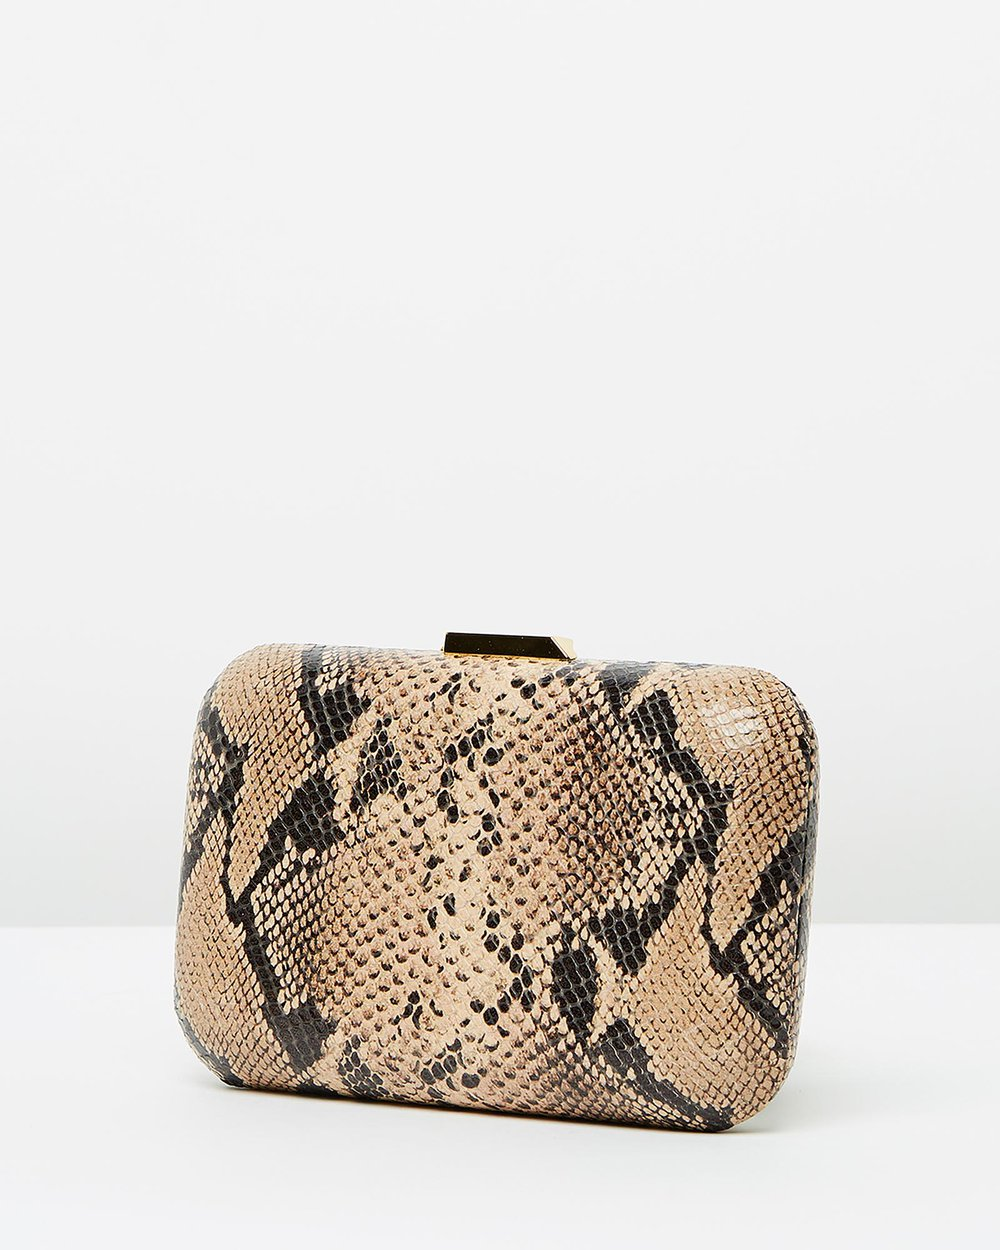 Chablis - Brown SnakeskinNina Armando draws inspiration from European designs to deliver striking and timeless accessories.